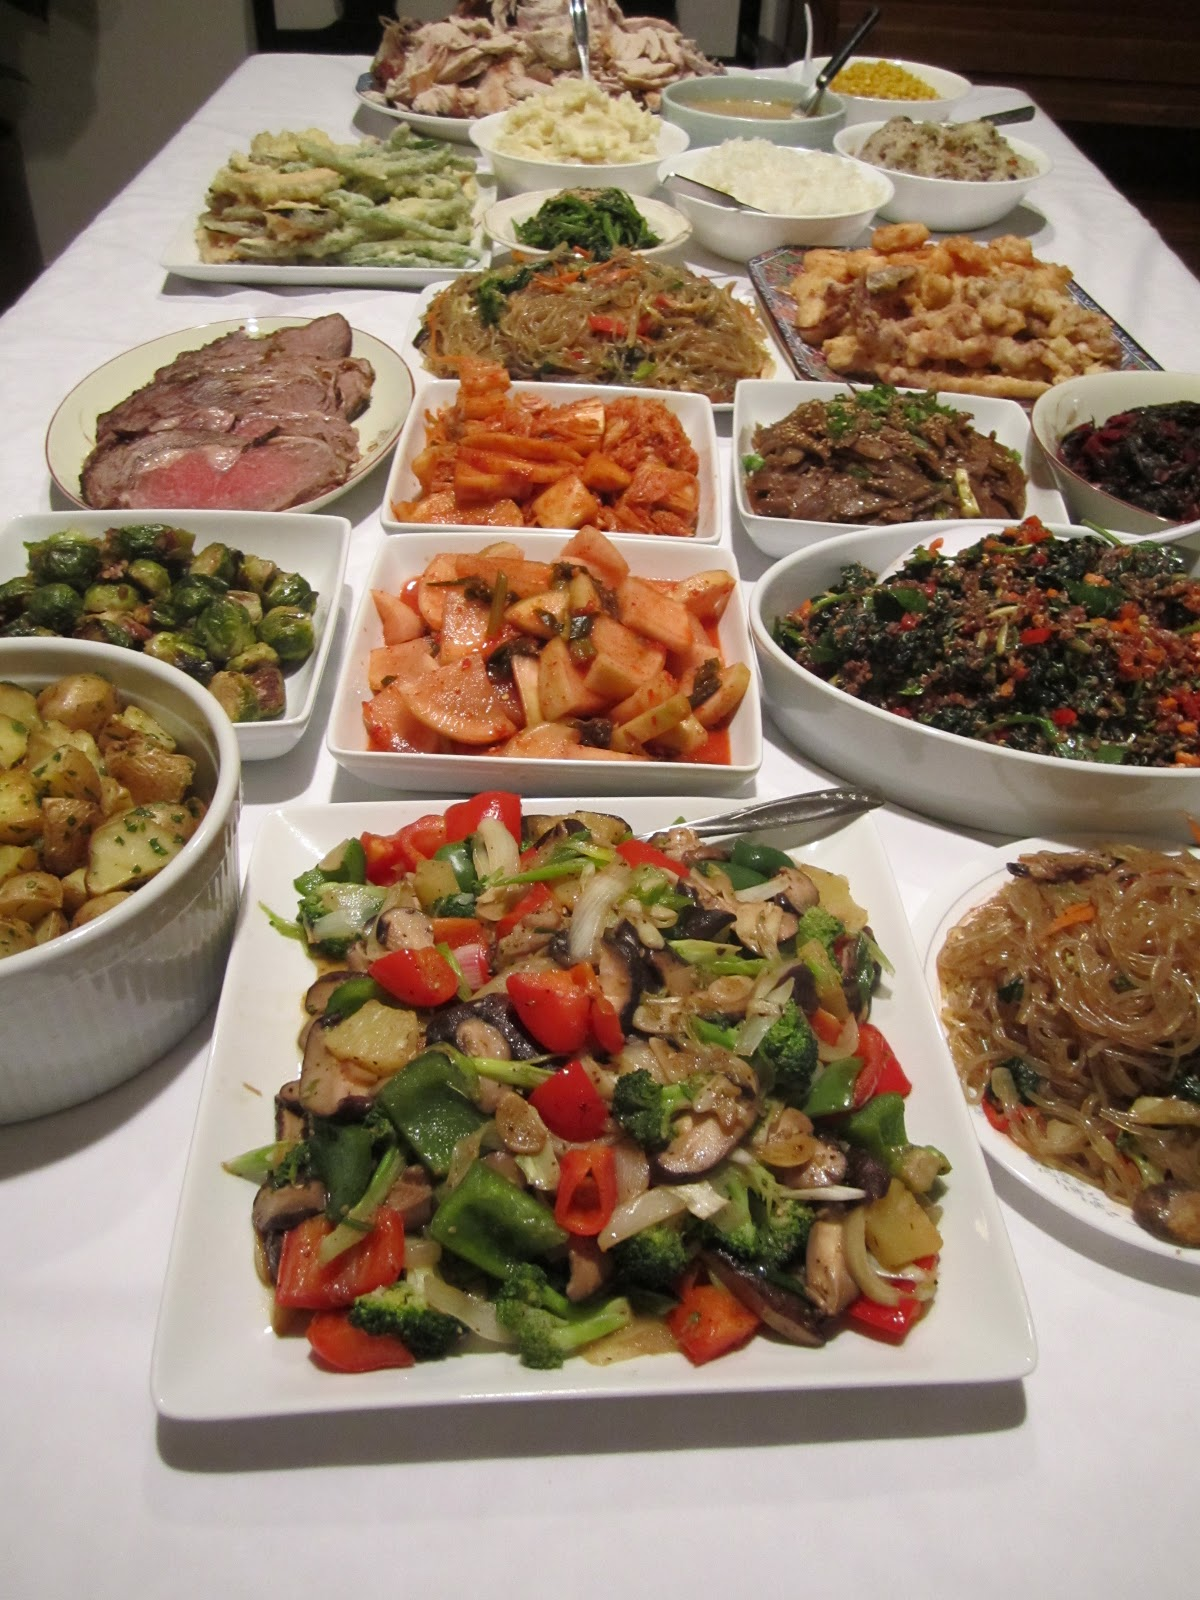 christmas dinner is a tradition at my parents like thanksgiving my mom usually makes the main protein along with some korean dishes and my siblings and